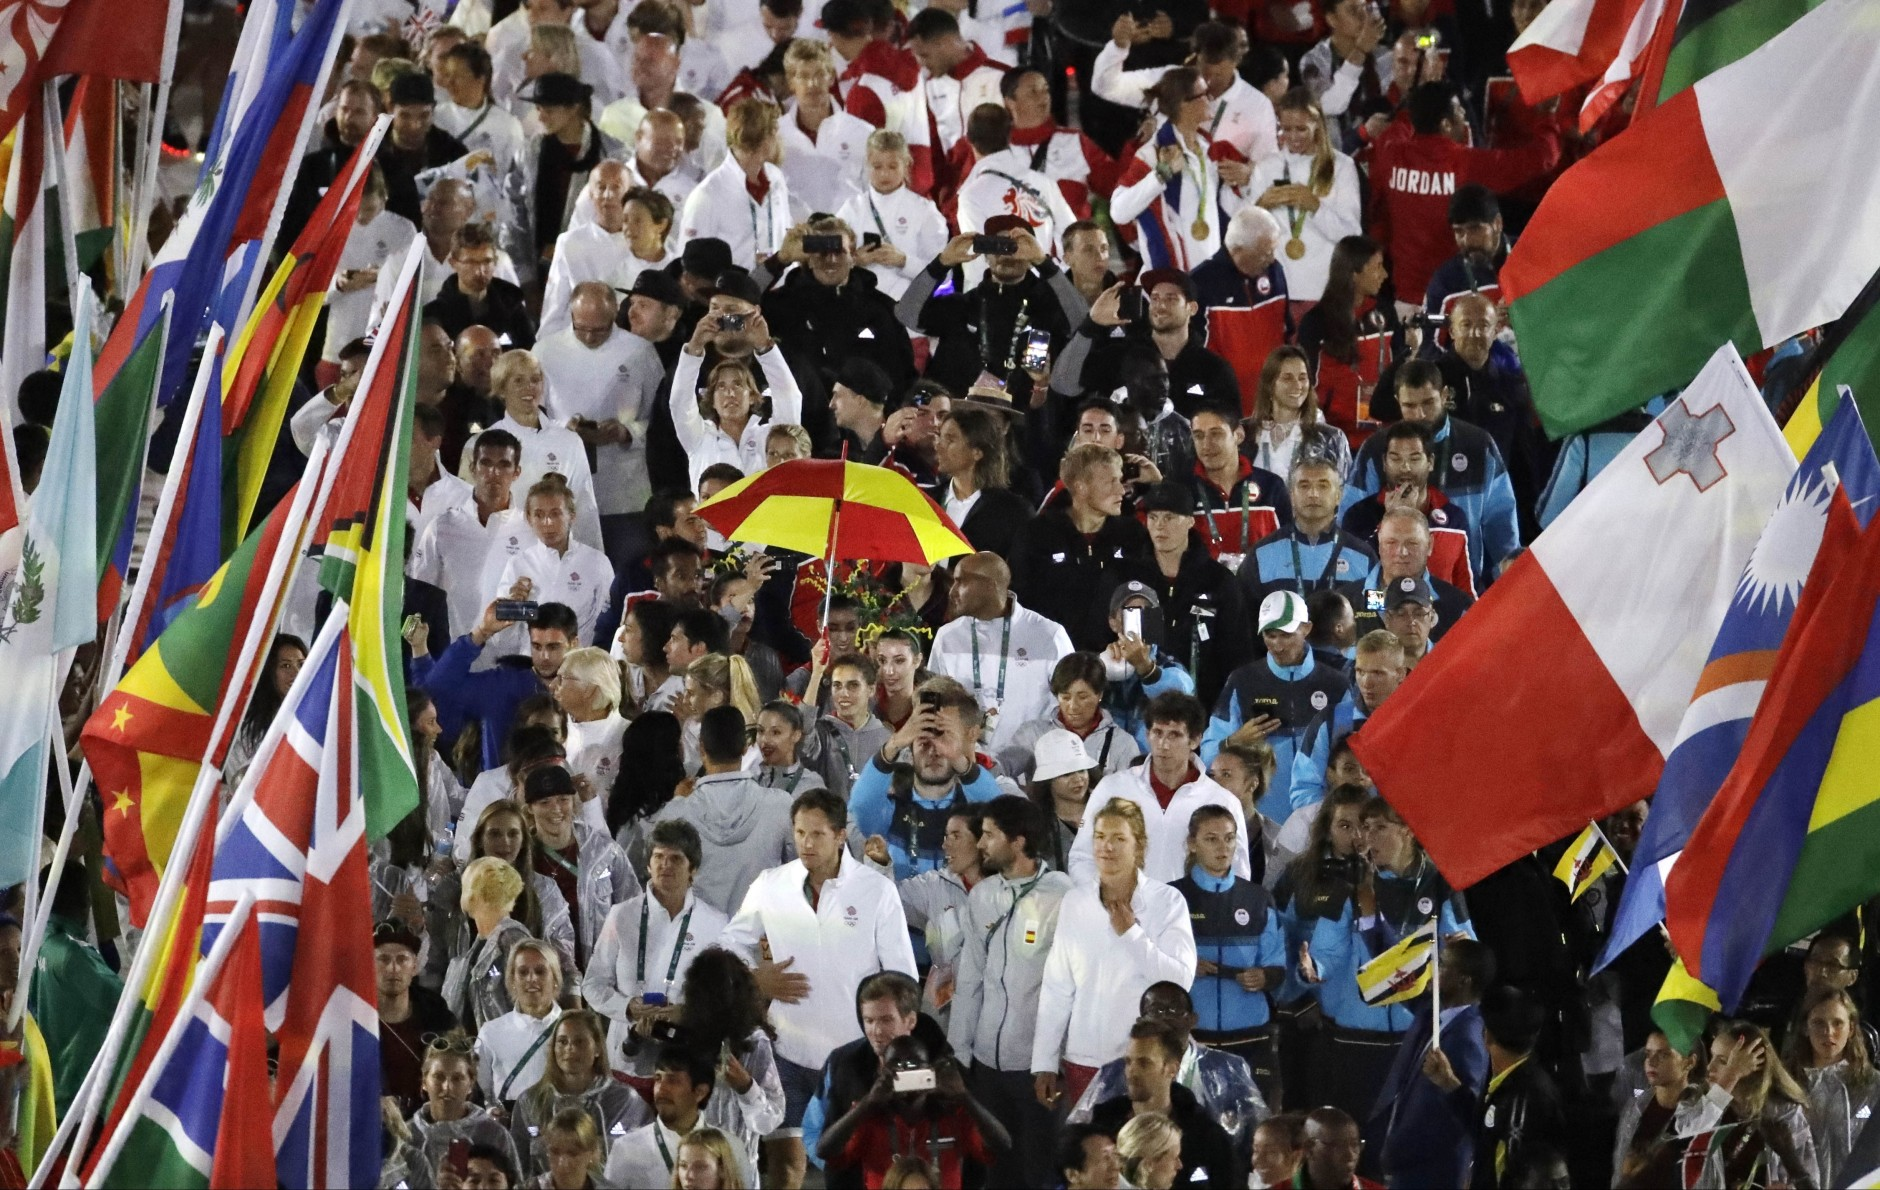 Athletes enter the closing ceremony in the Maracana stadium at the 2016 Summer Olympics in Rio de Janeiro, Brazil, Sunday, Aug. 21, 2016. (AP Photo/Charlie Riedel)